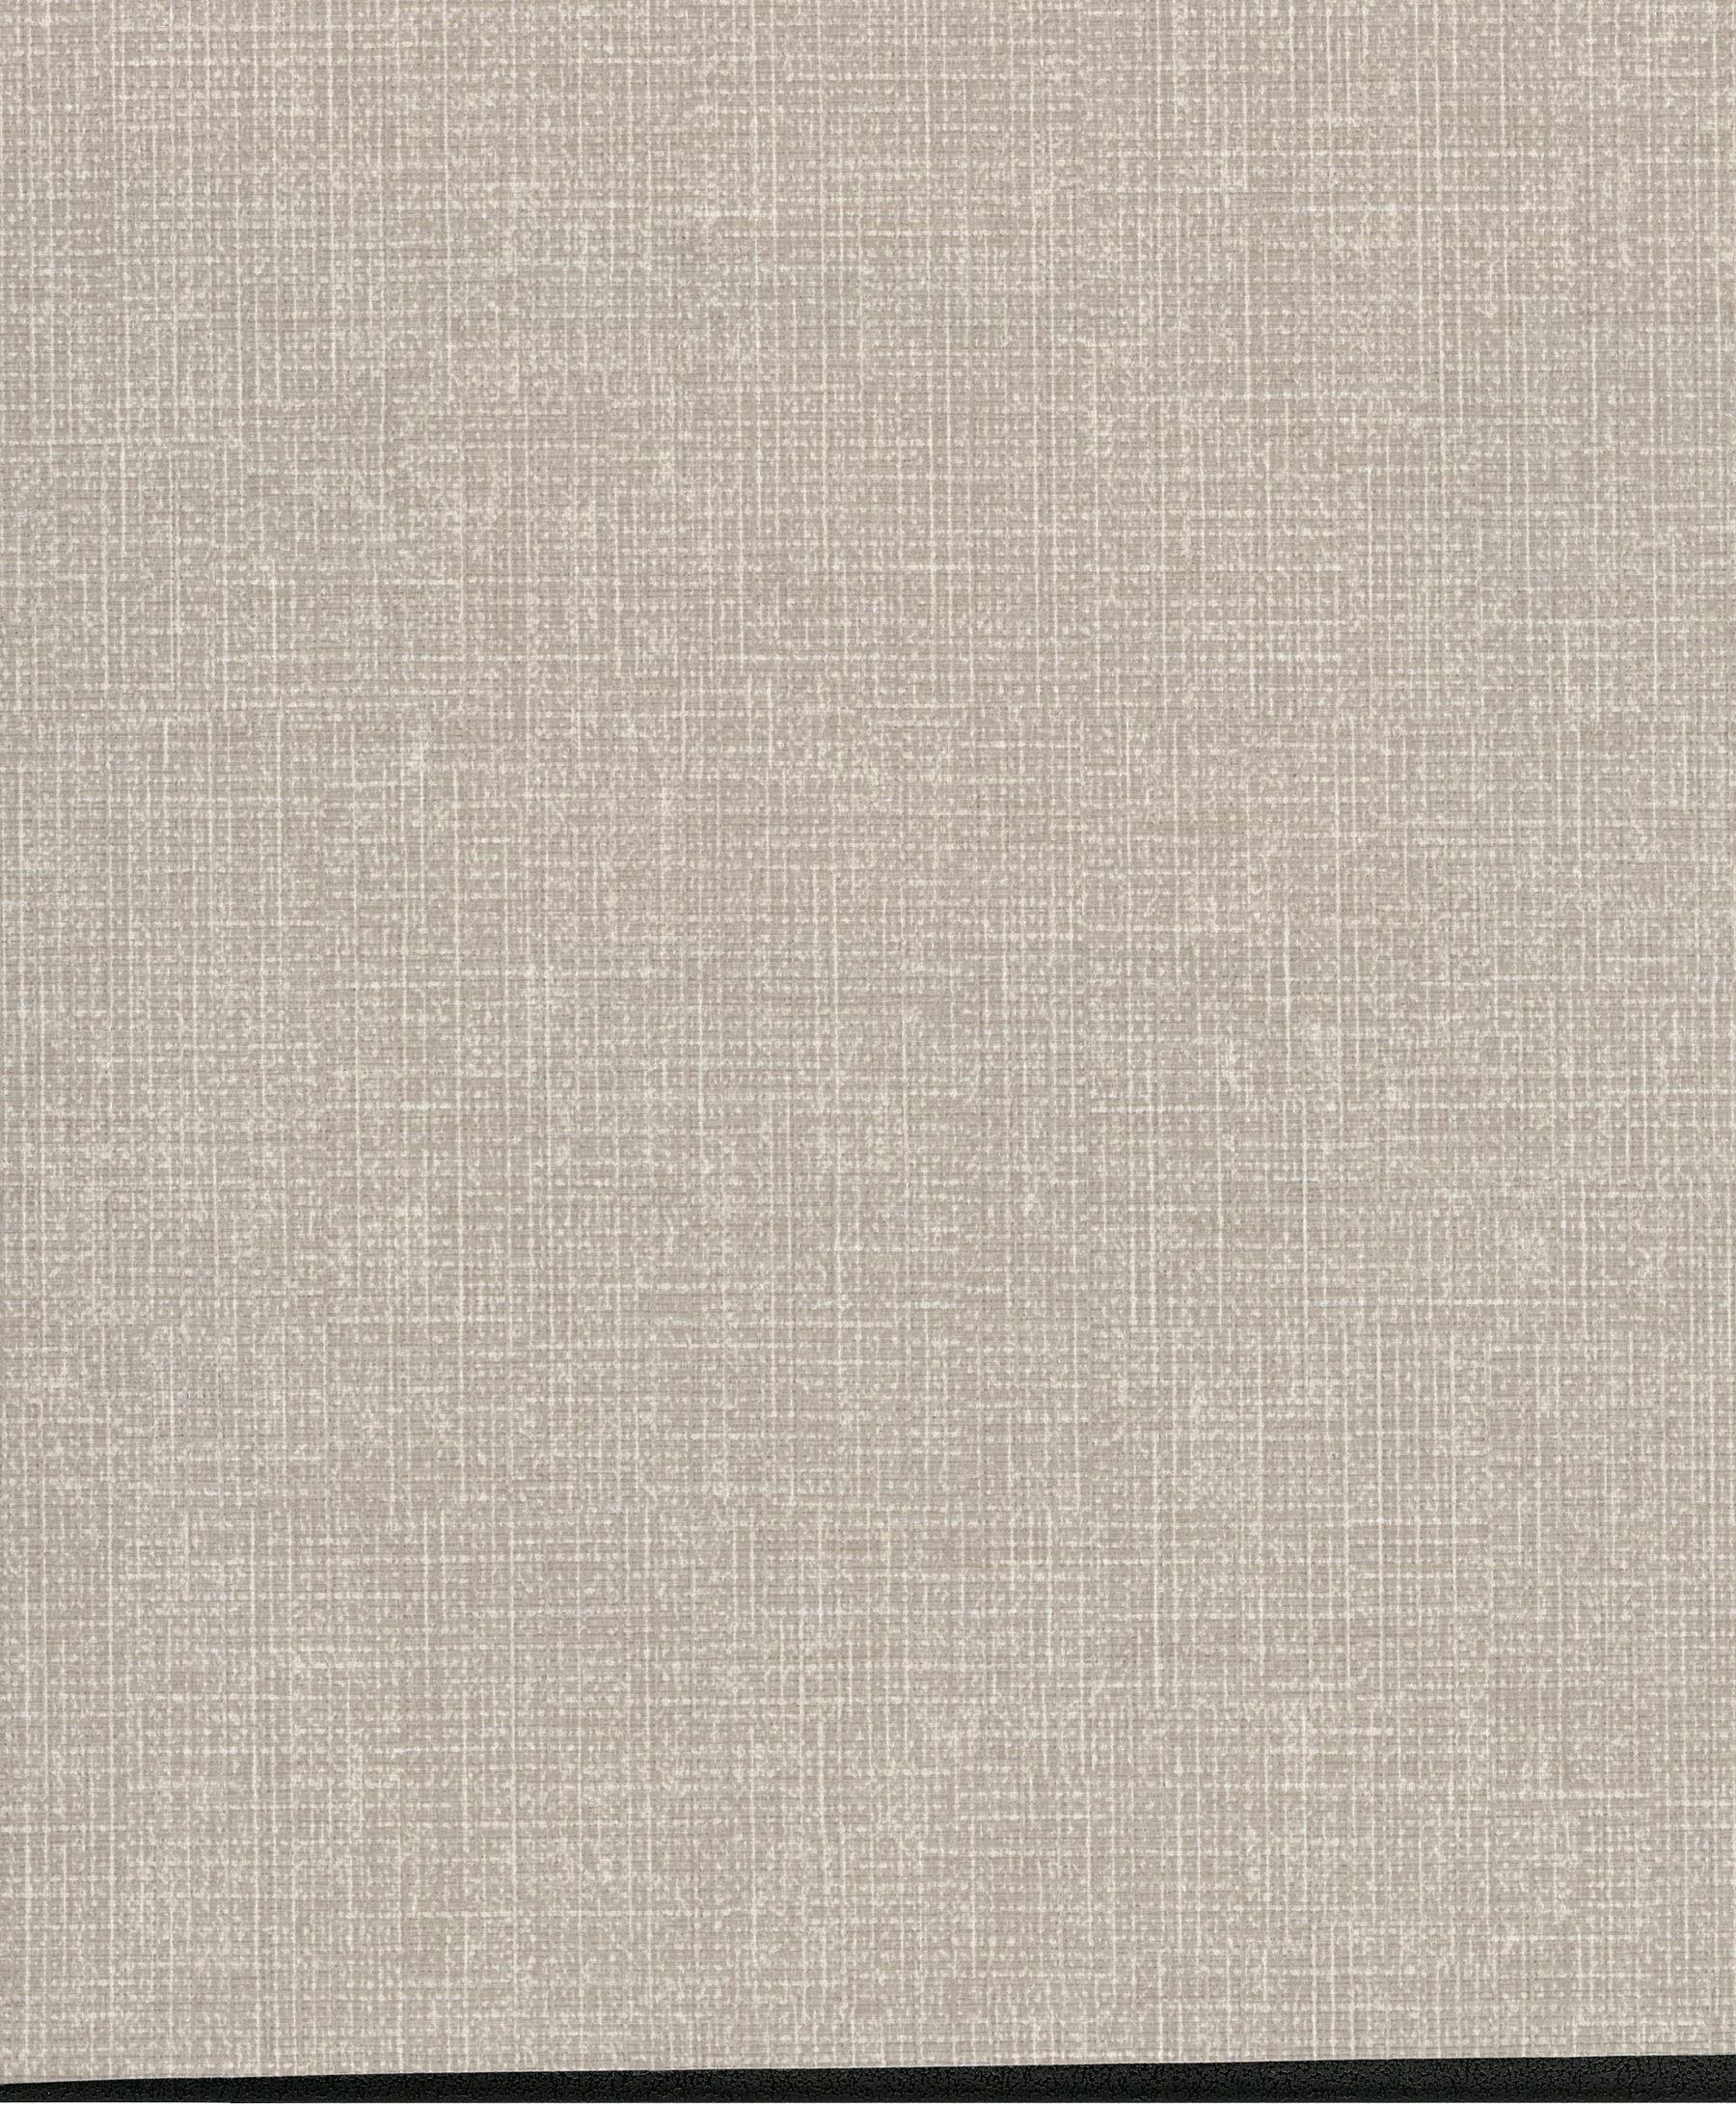 Picture of Arya Grey Fabric Texture Wallpaper